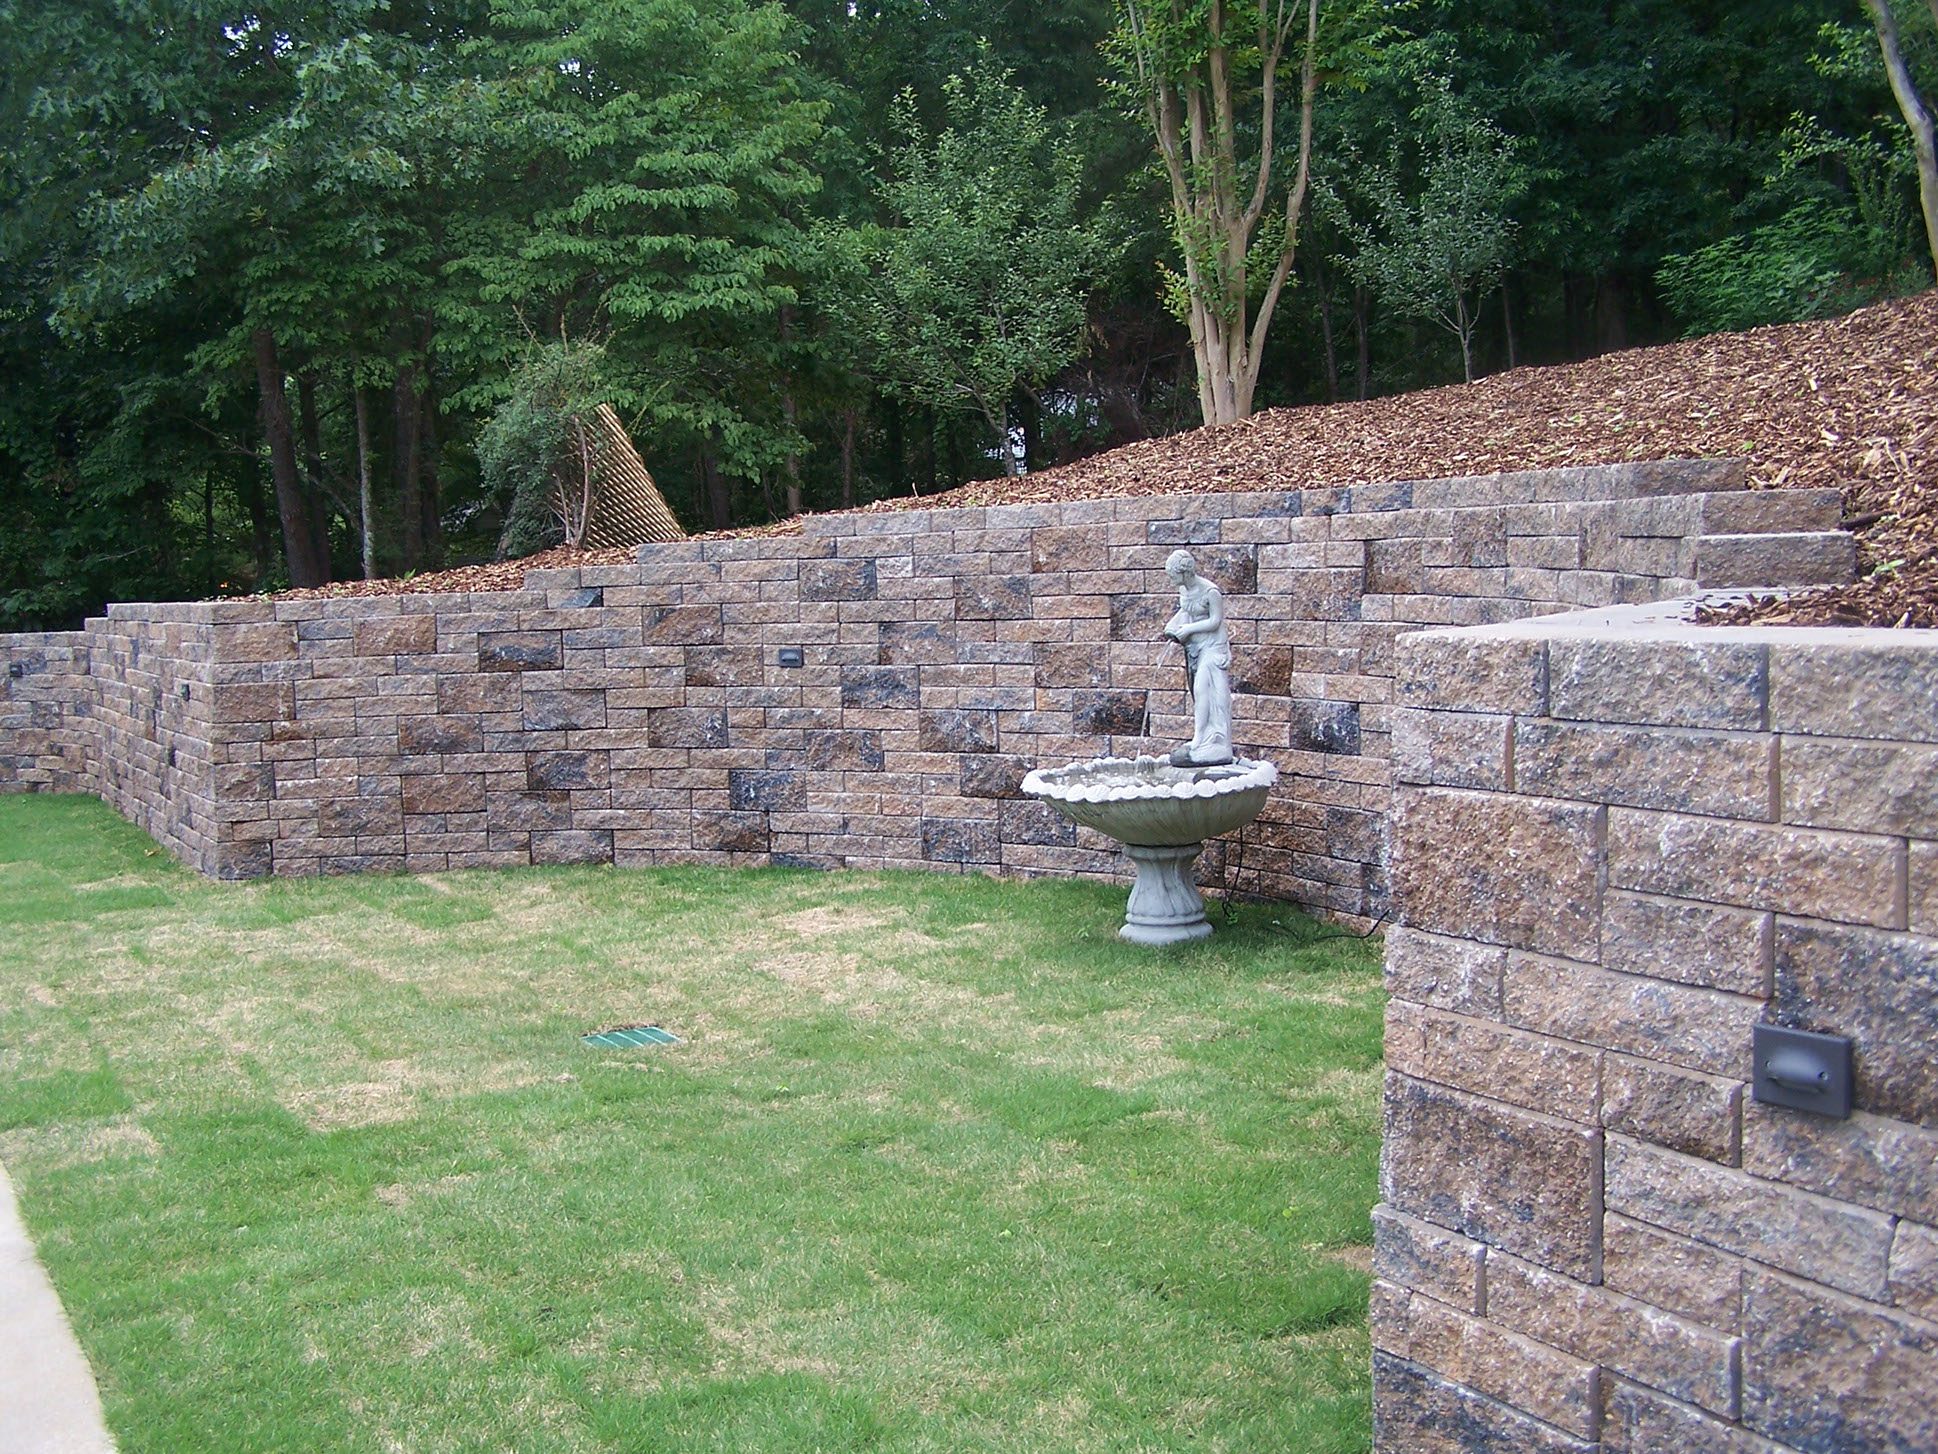 Home Geostone Retaining Wall Systems Inc